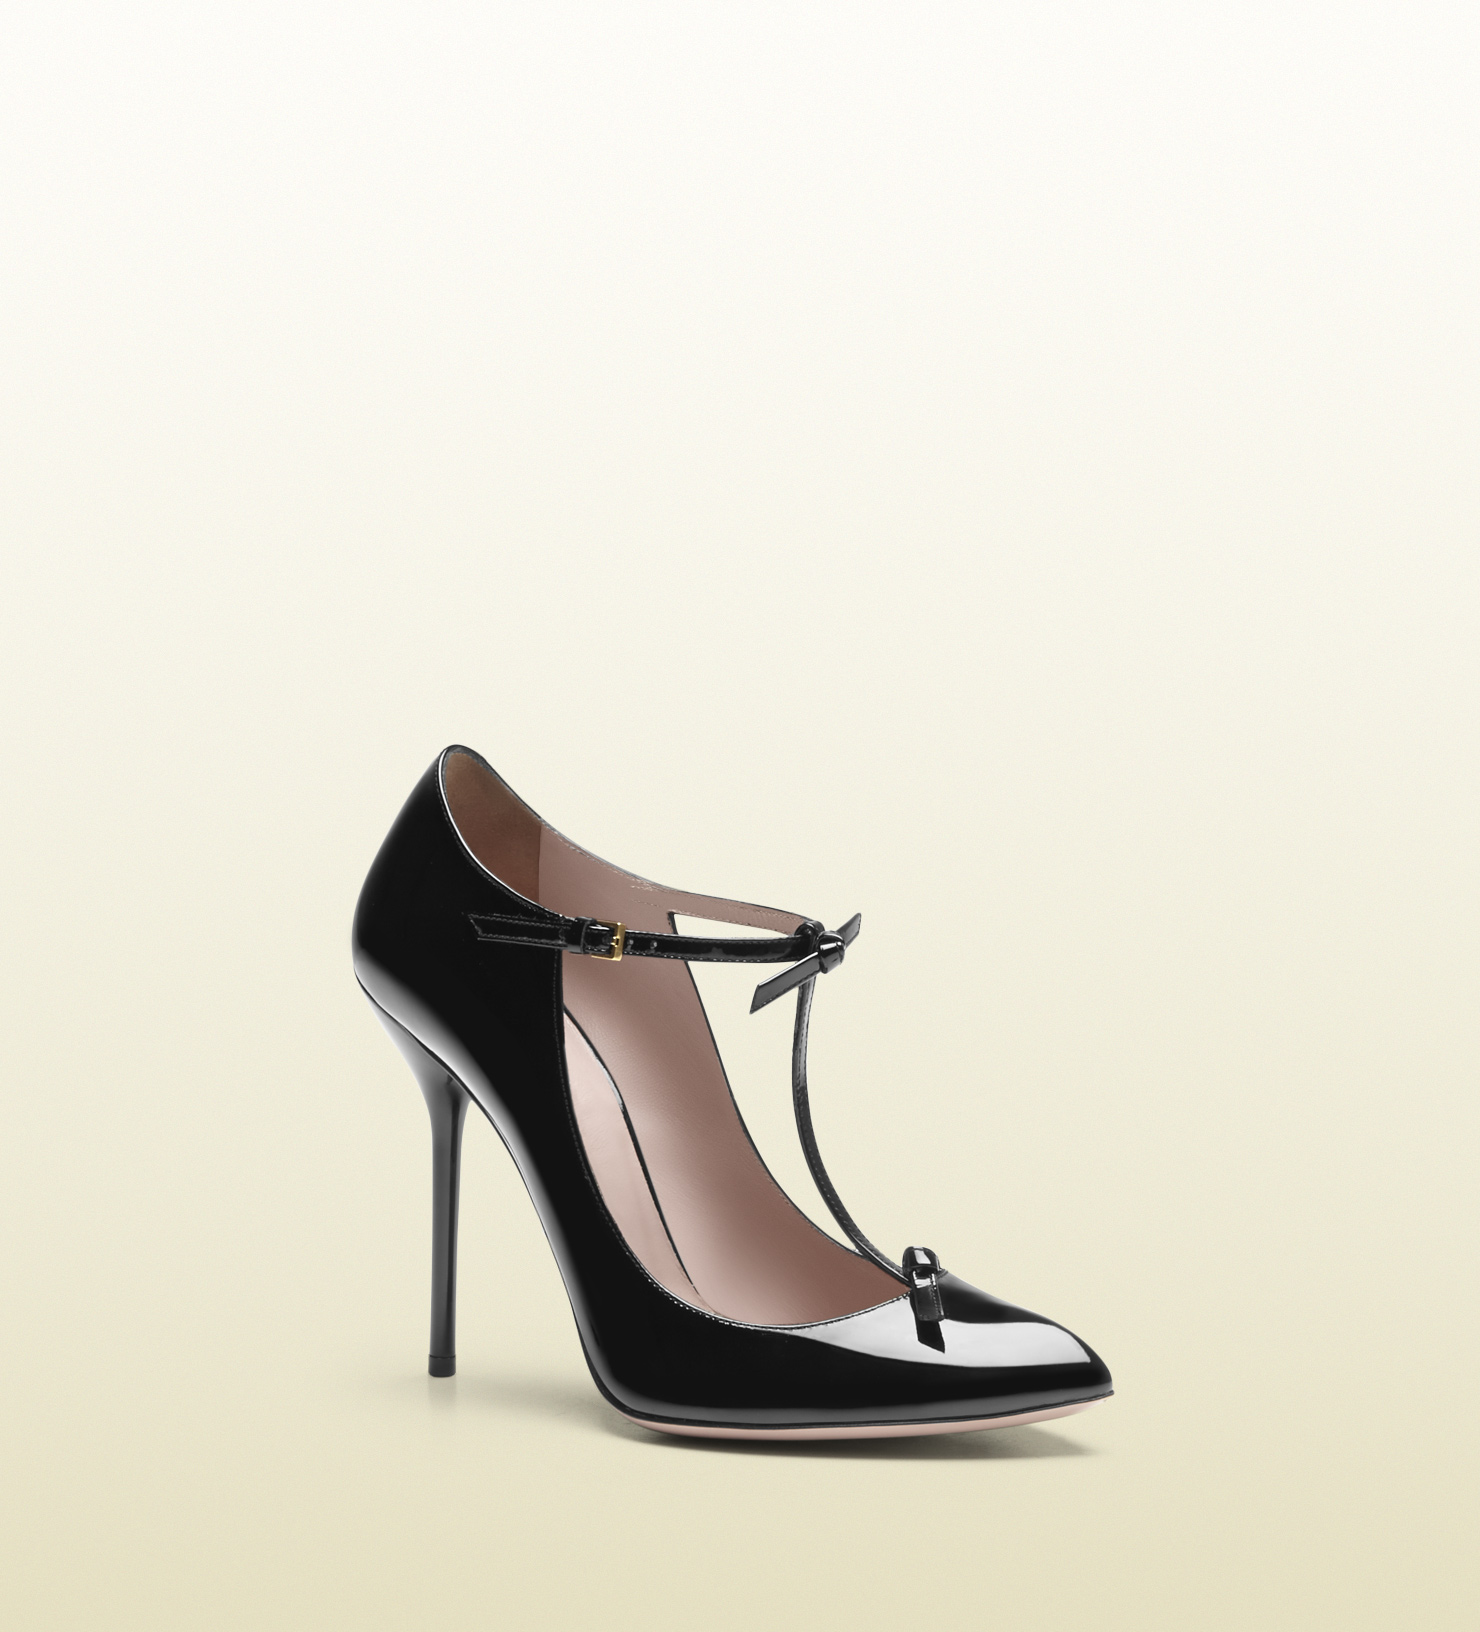 d563b6bfc10 Lyst - Gucci Patent Leather T-strap Pump in Black